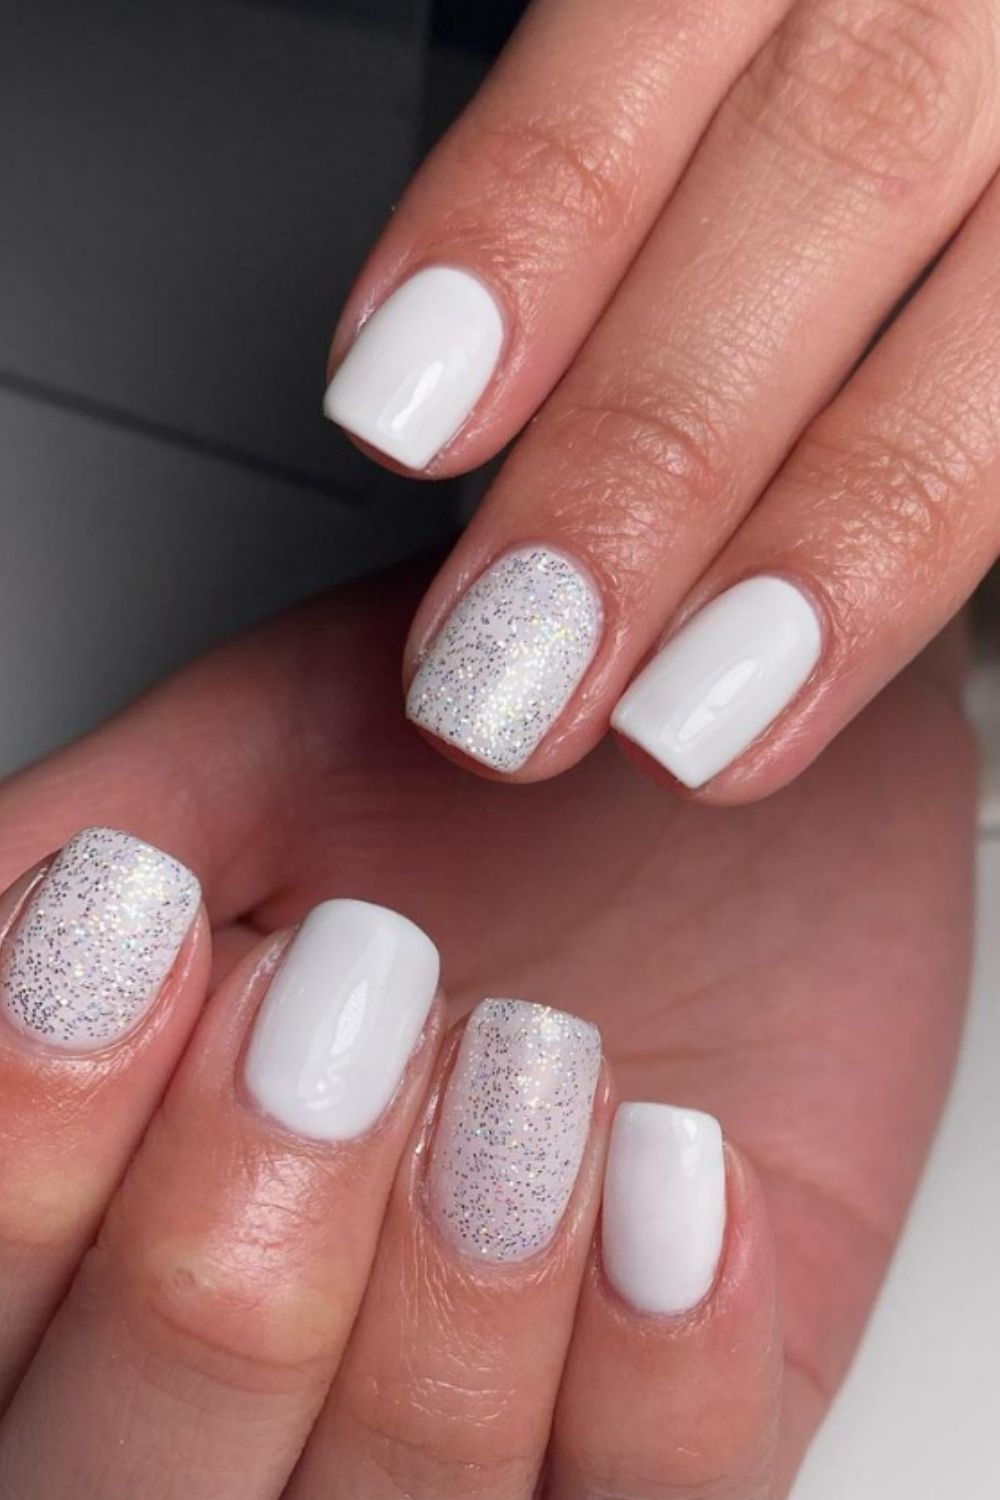 Short glitter nails become a hit in summer vacation 2021